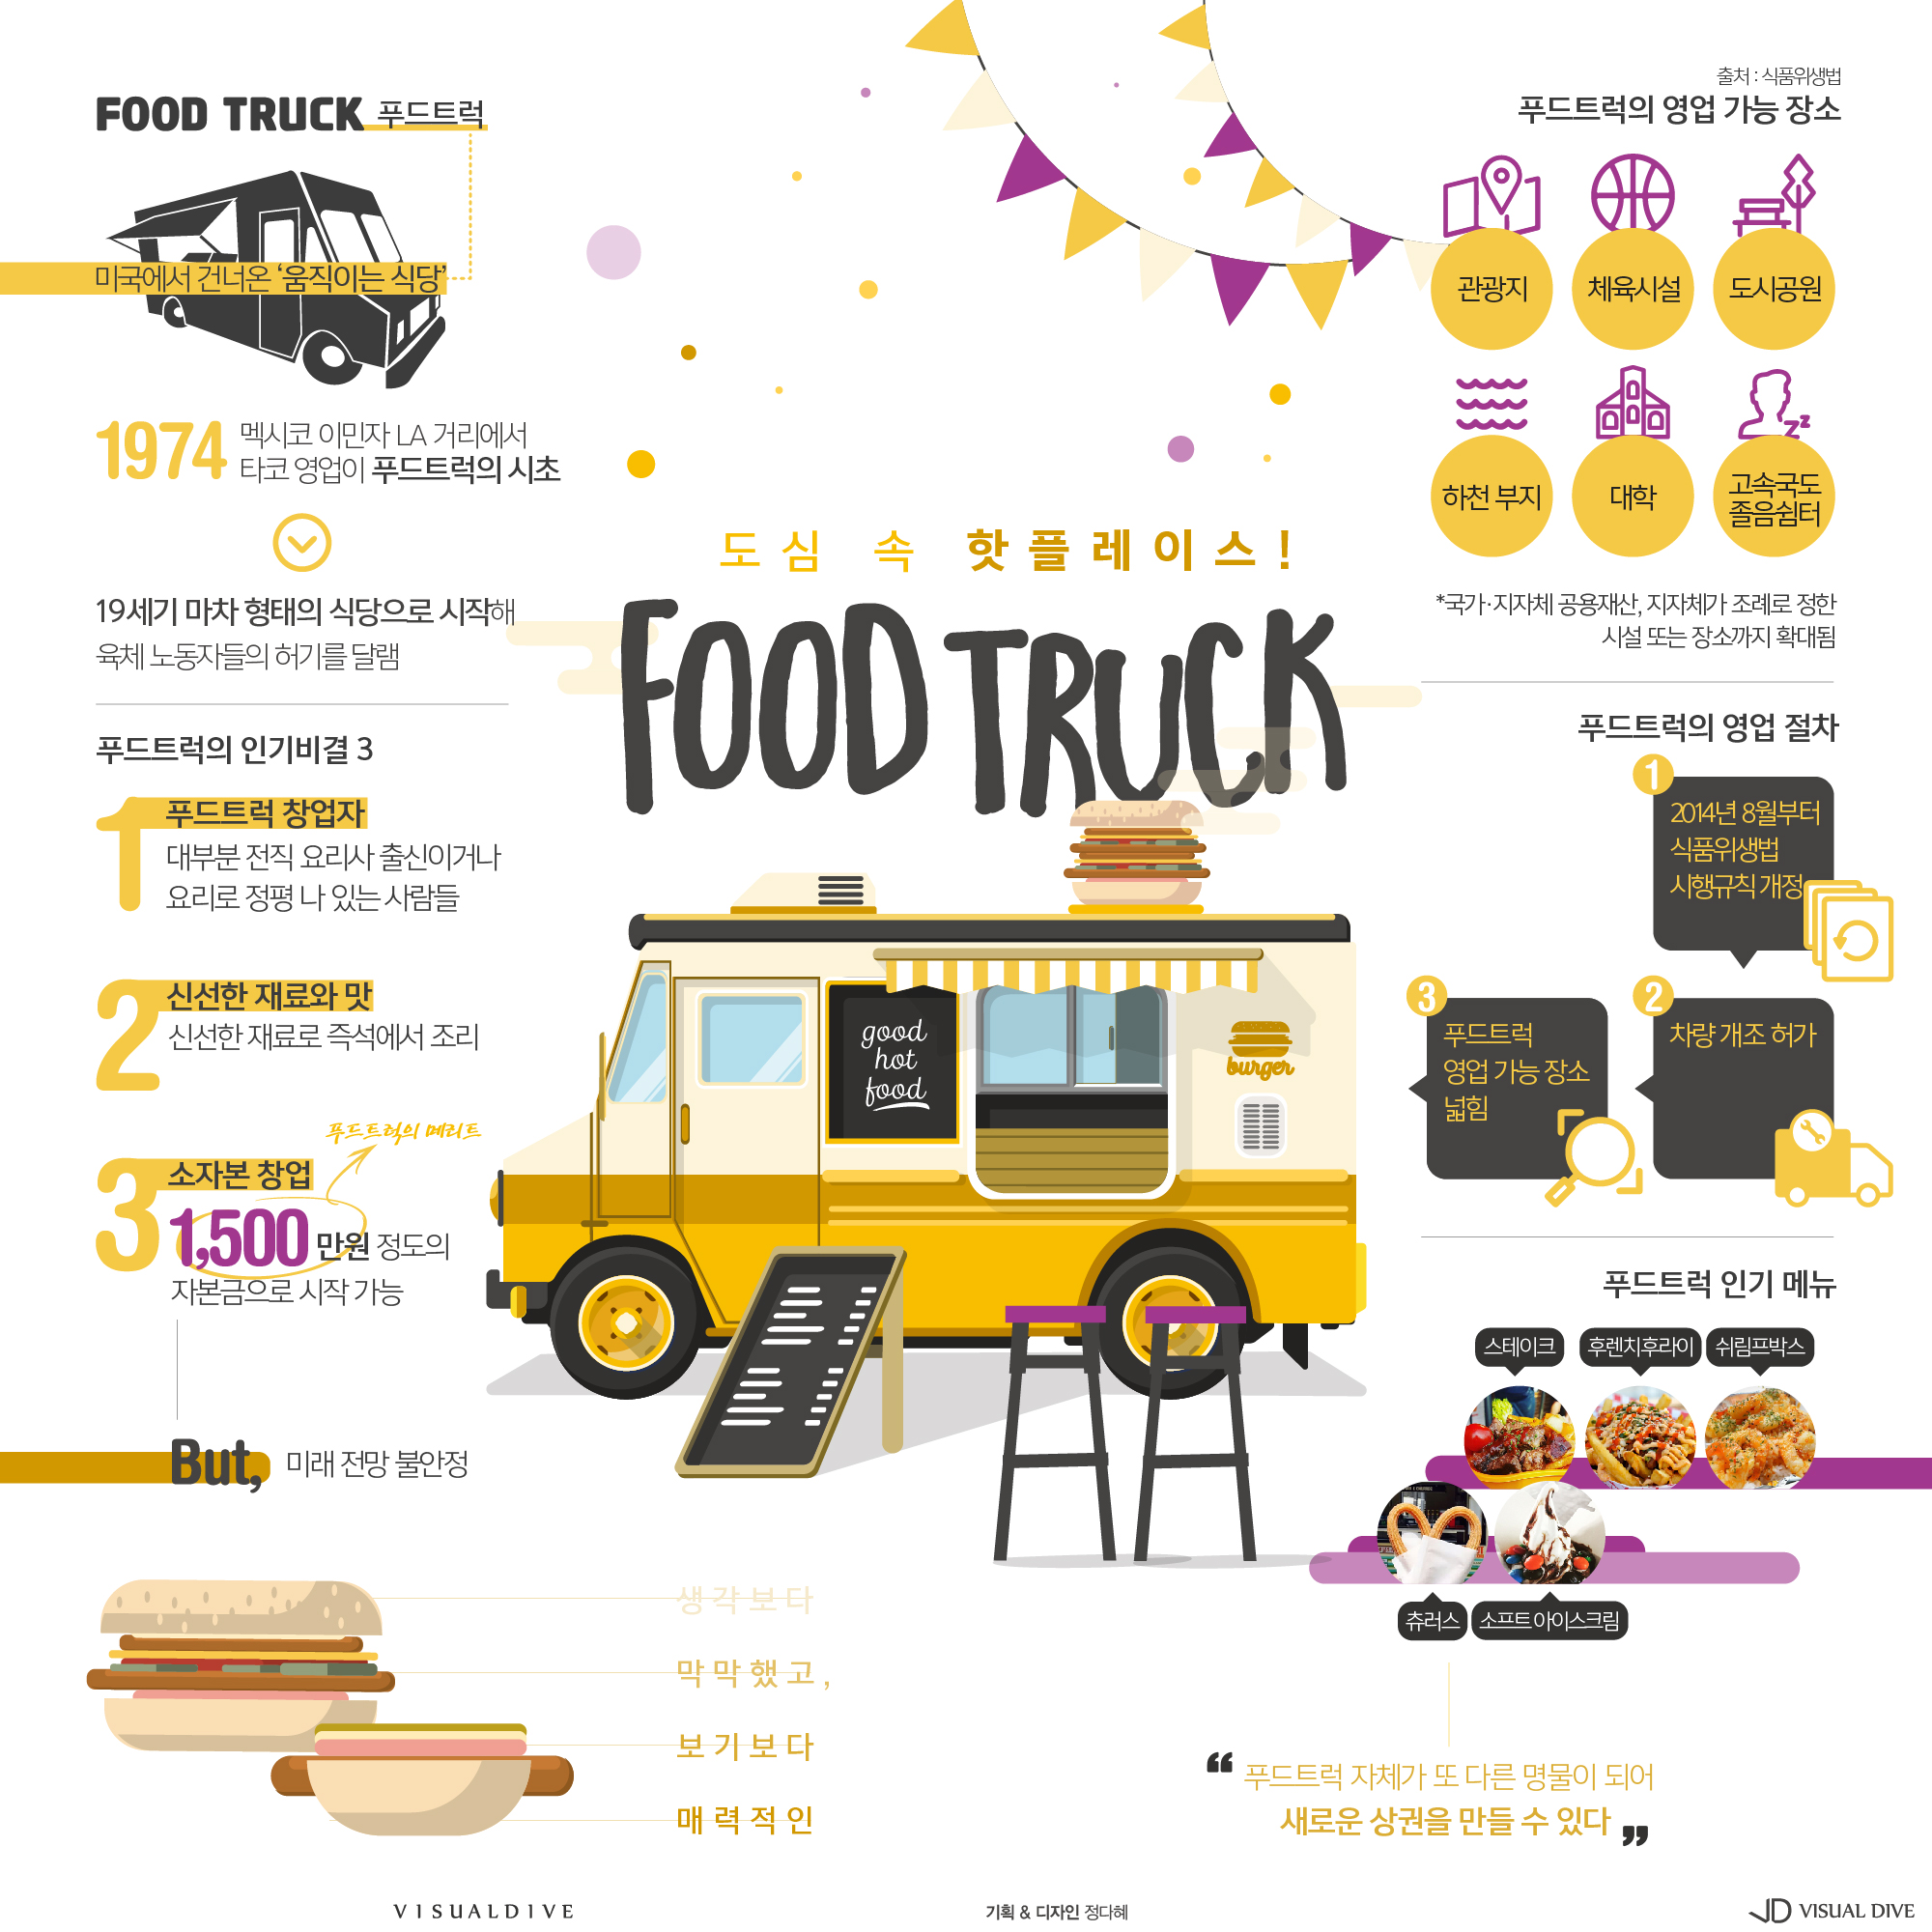 vd-foodtruck-20161013-03